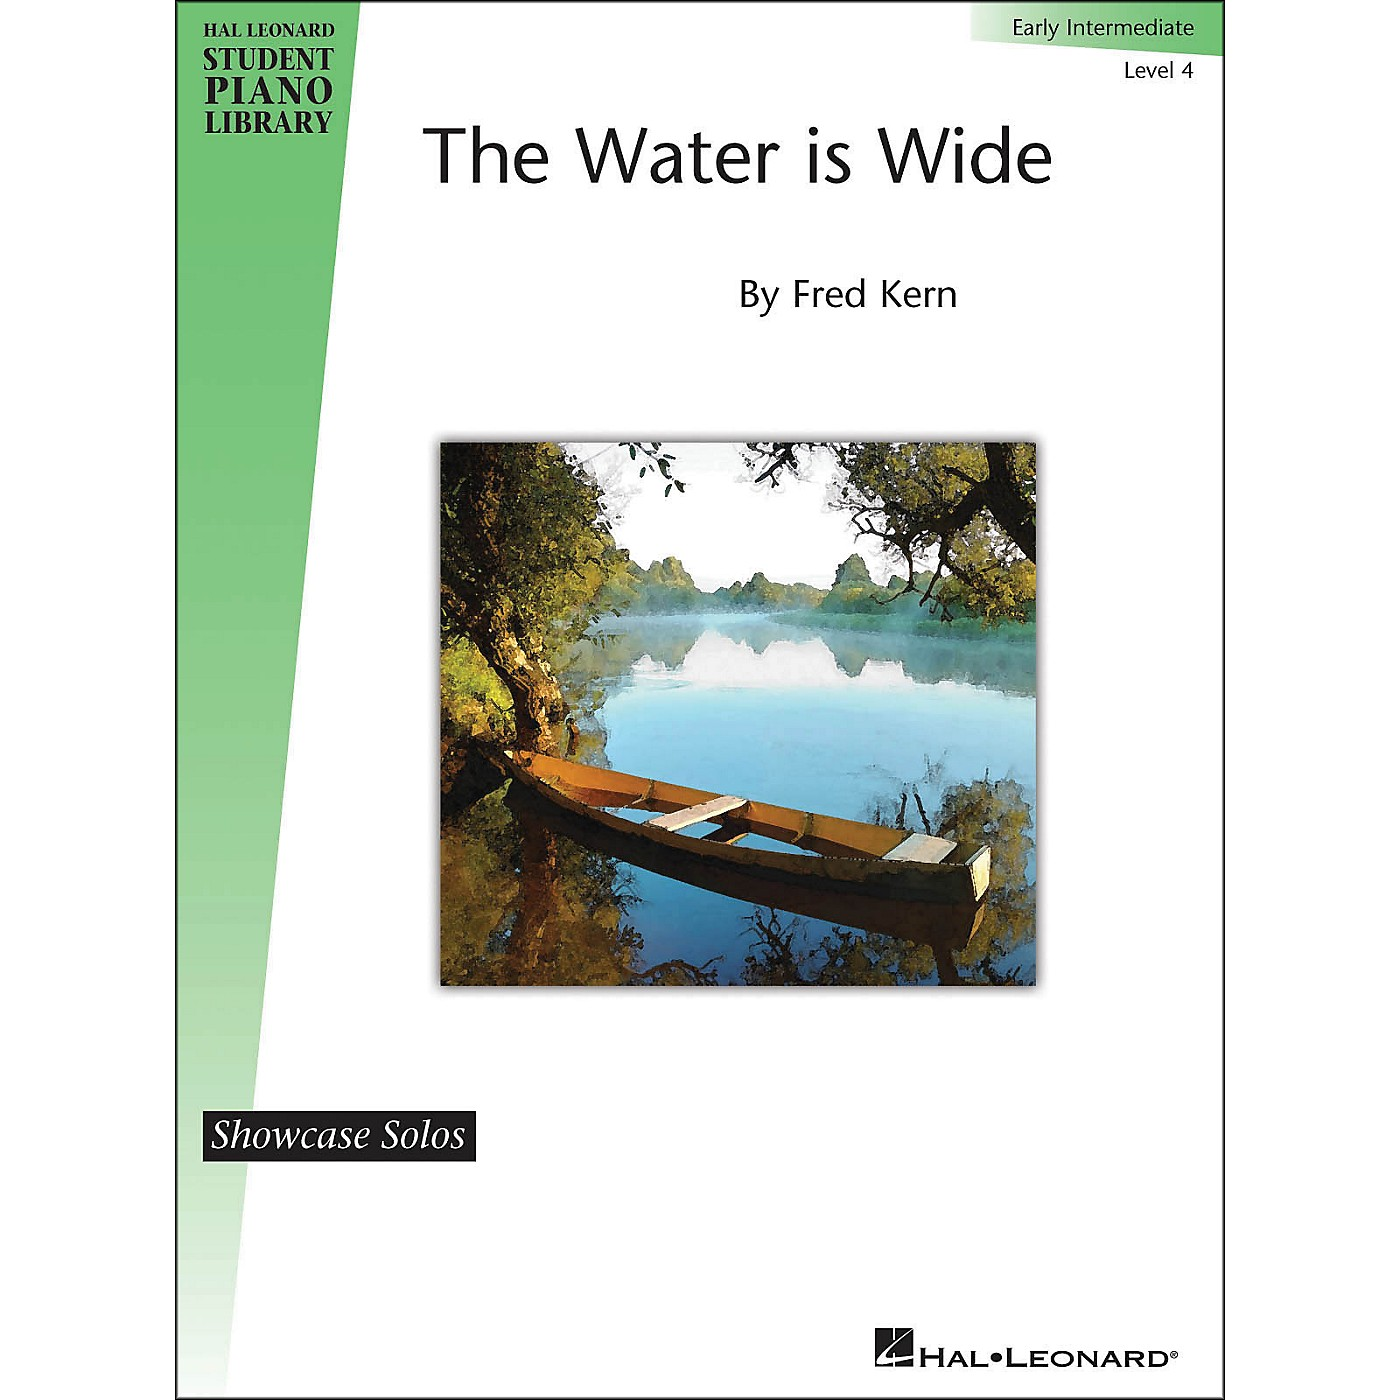 Hal Leonard The Water Is Wide - HLSPL Showcase Solo Level 4 Early Intermediate thumbnail